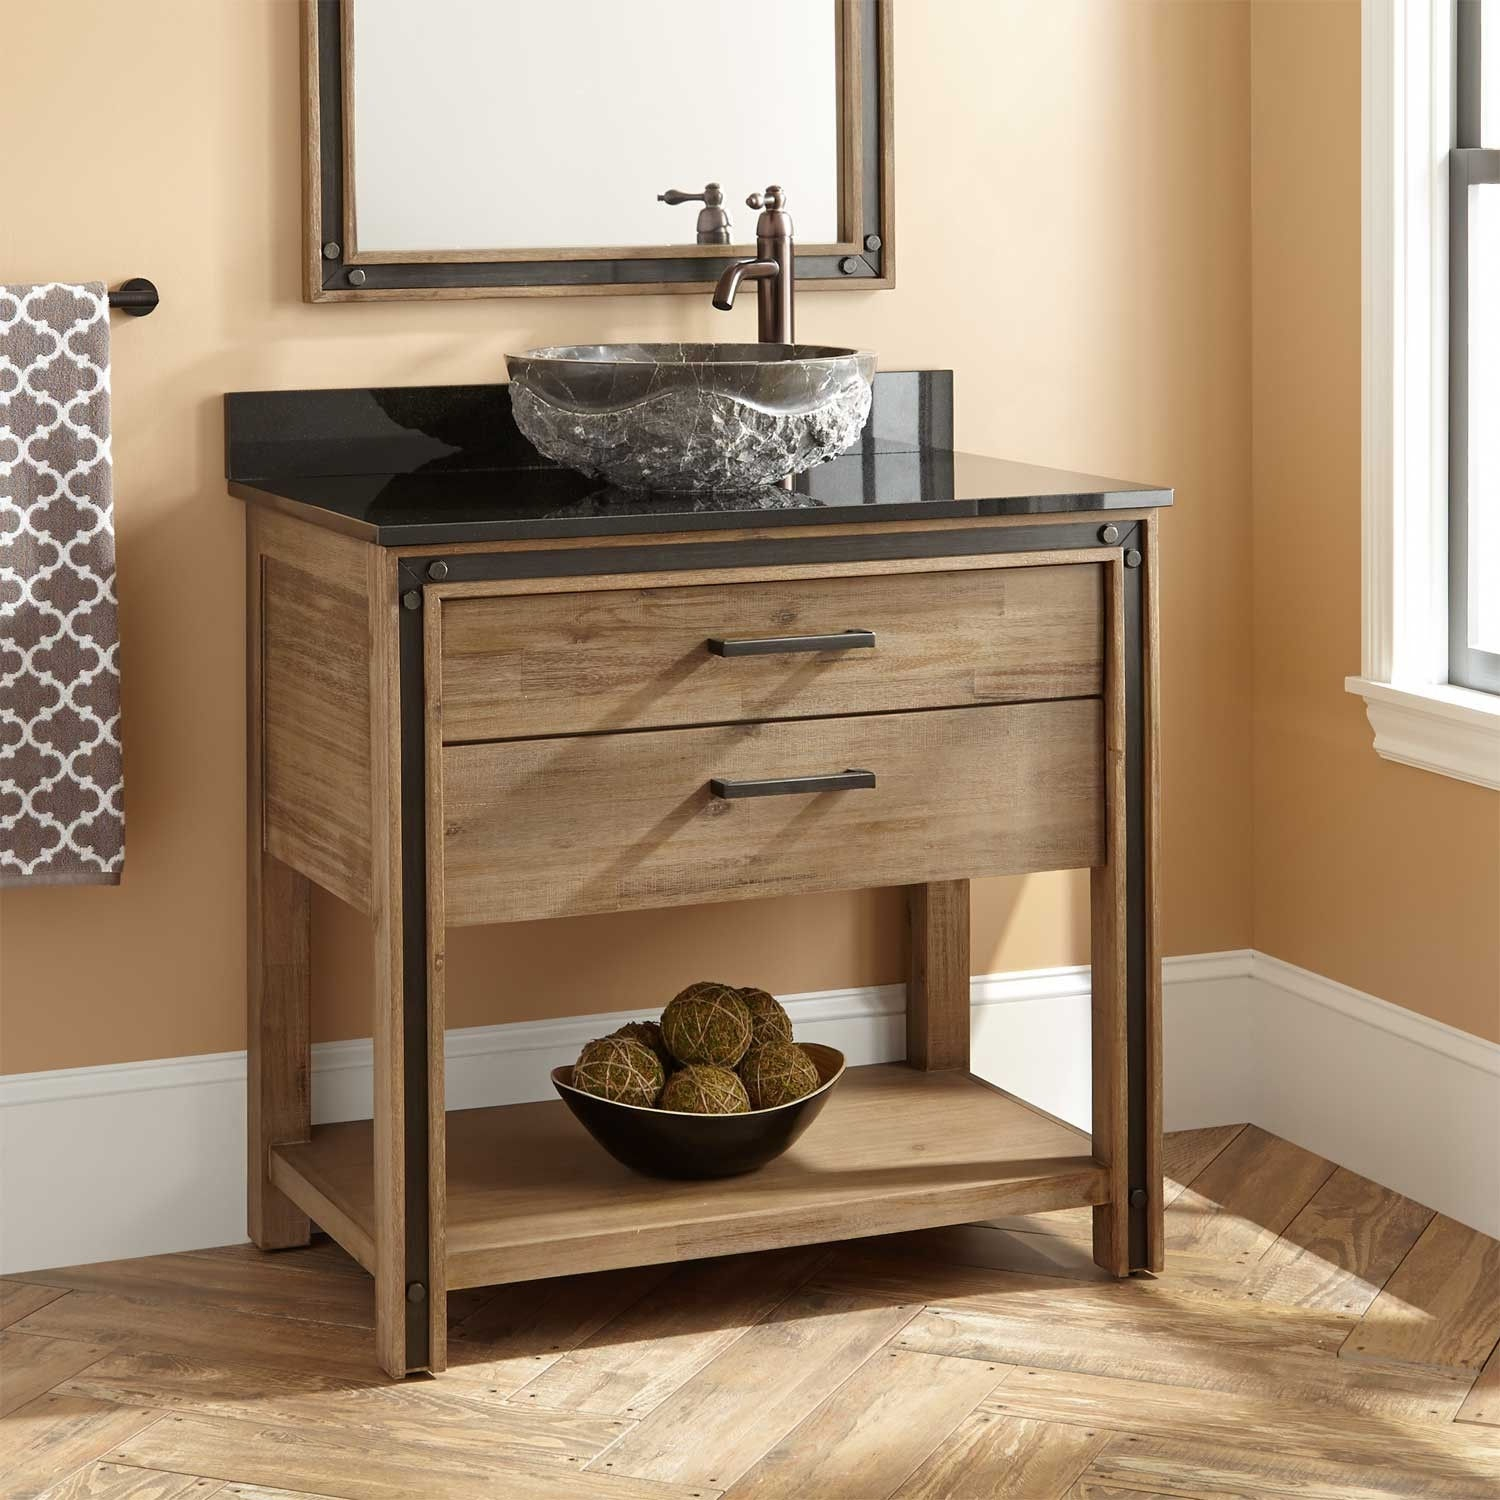 Bathroom Vanity Cabinet And Sink36 celebration vessel sink vanity rustic acacia vessel sink